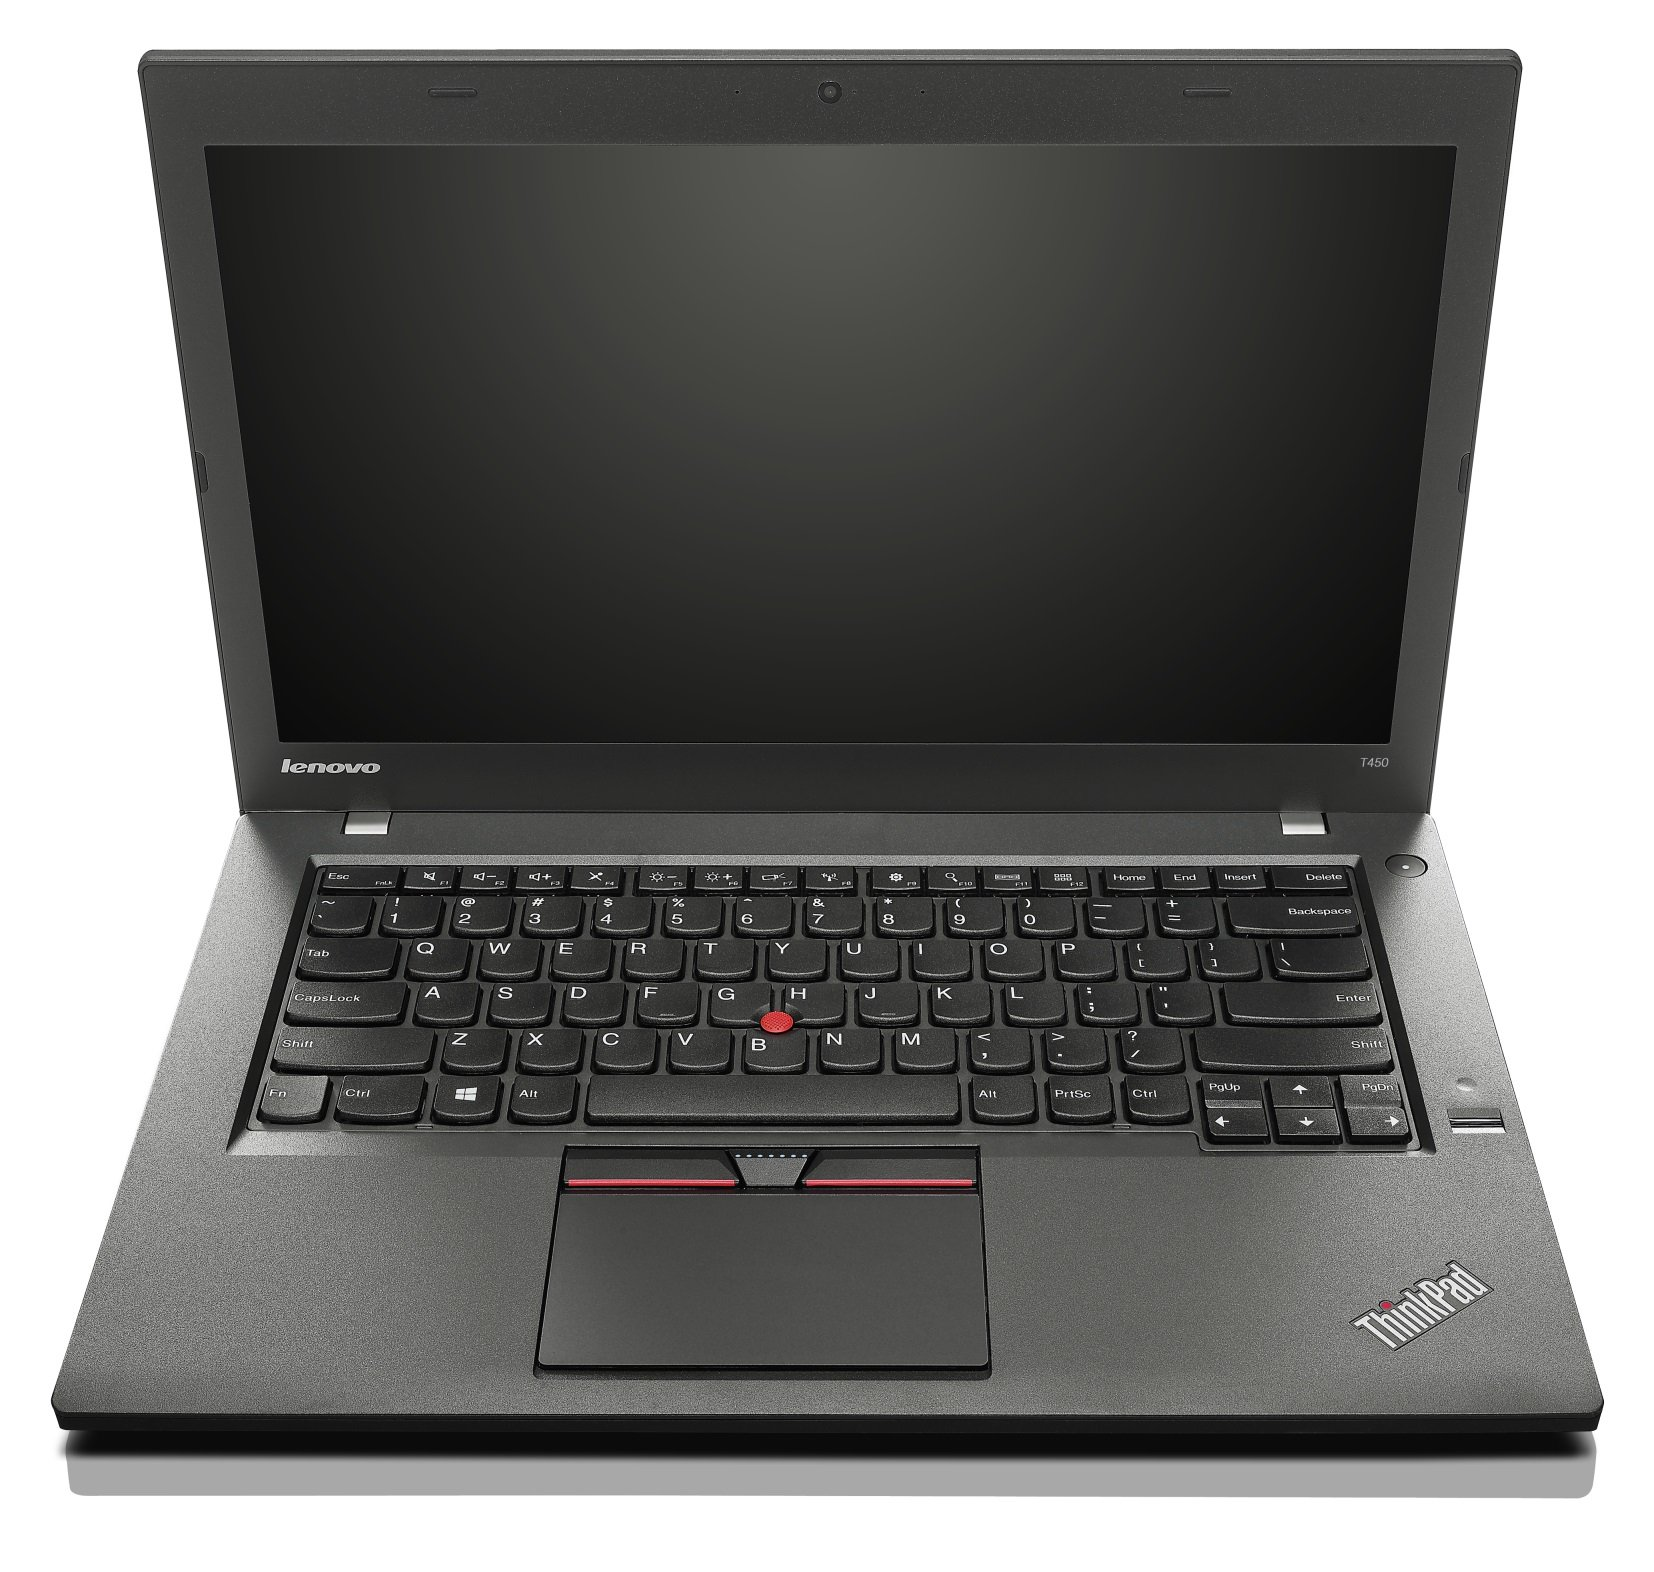 Lenovo 20BU009HBR Notebook T450 Core i7 4GB 500GB